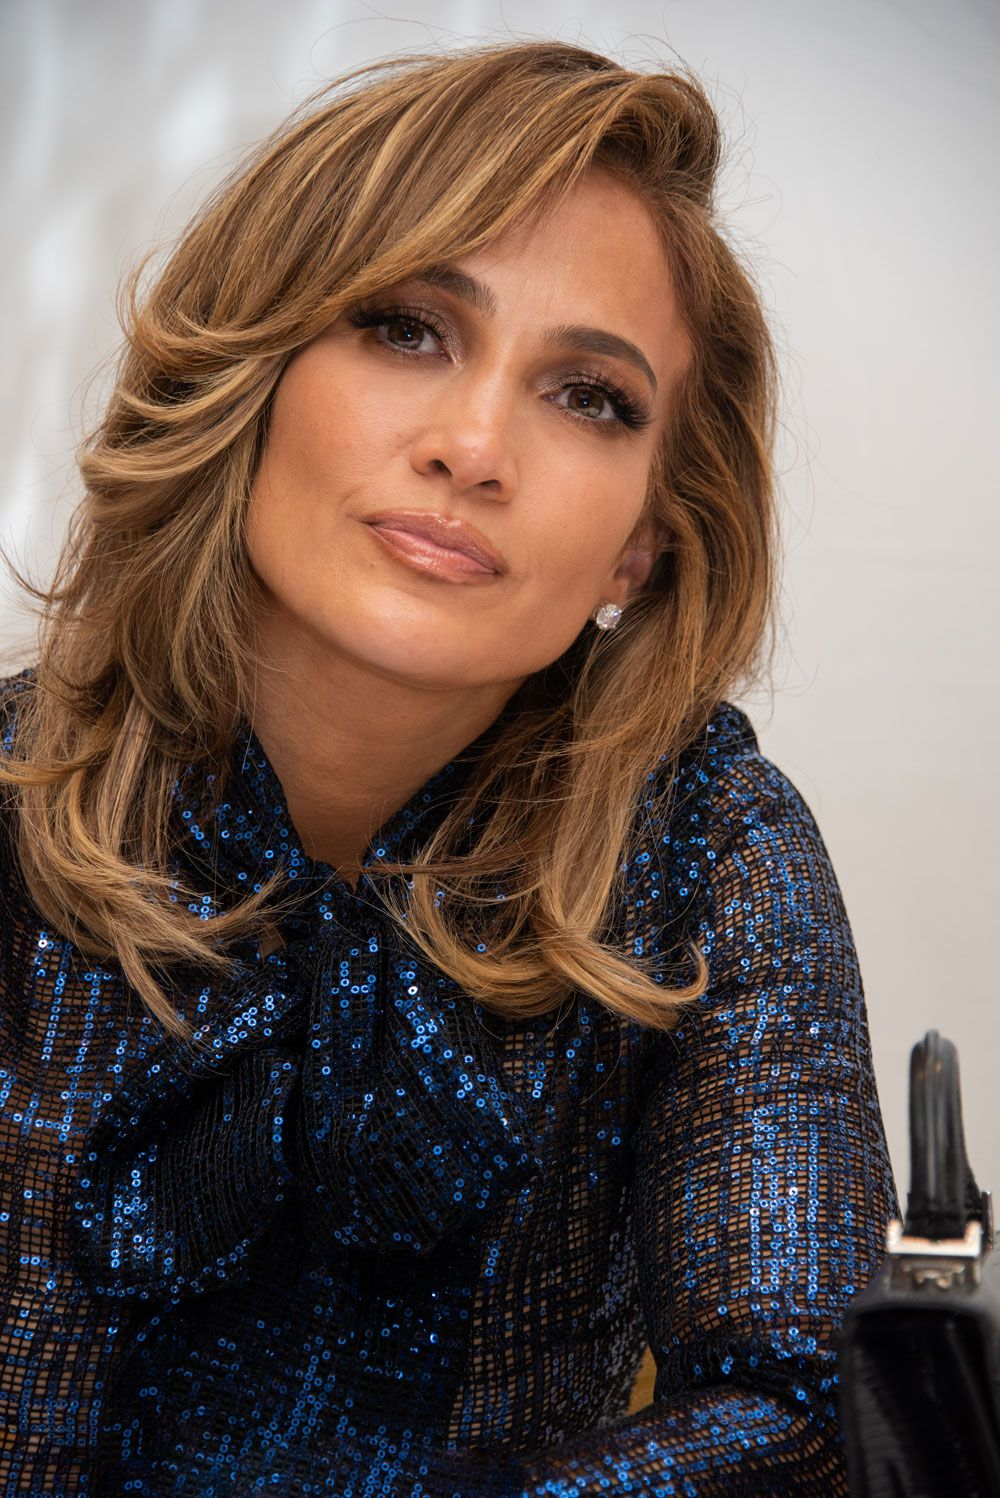 The £6 product Jennifer Lopez's makeup artist uses to make her foundation last all day